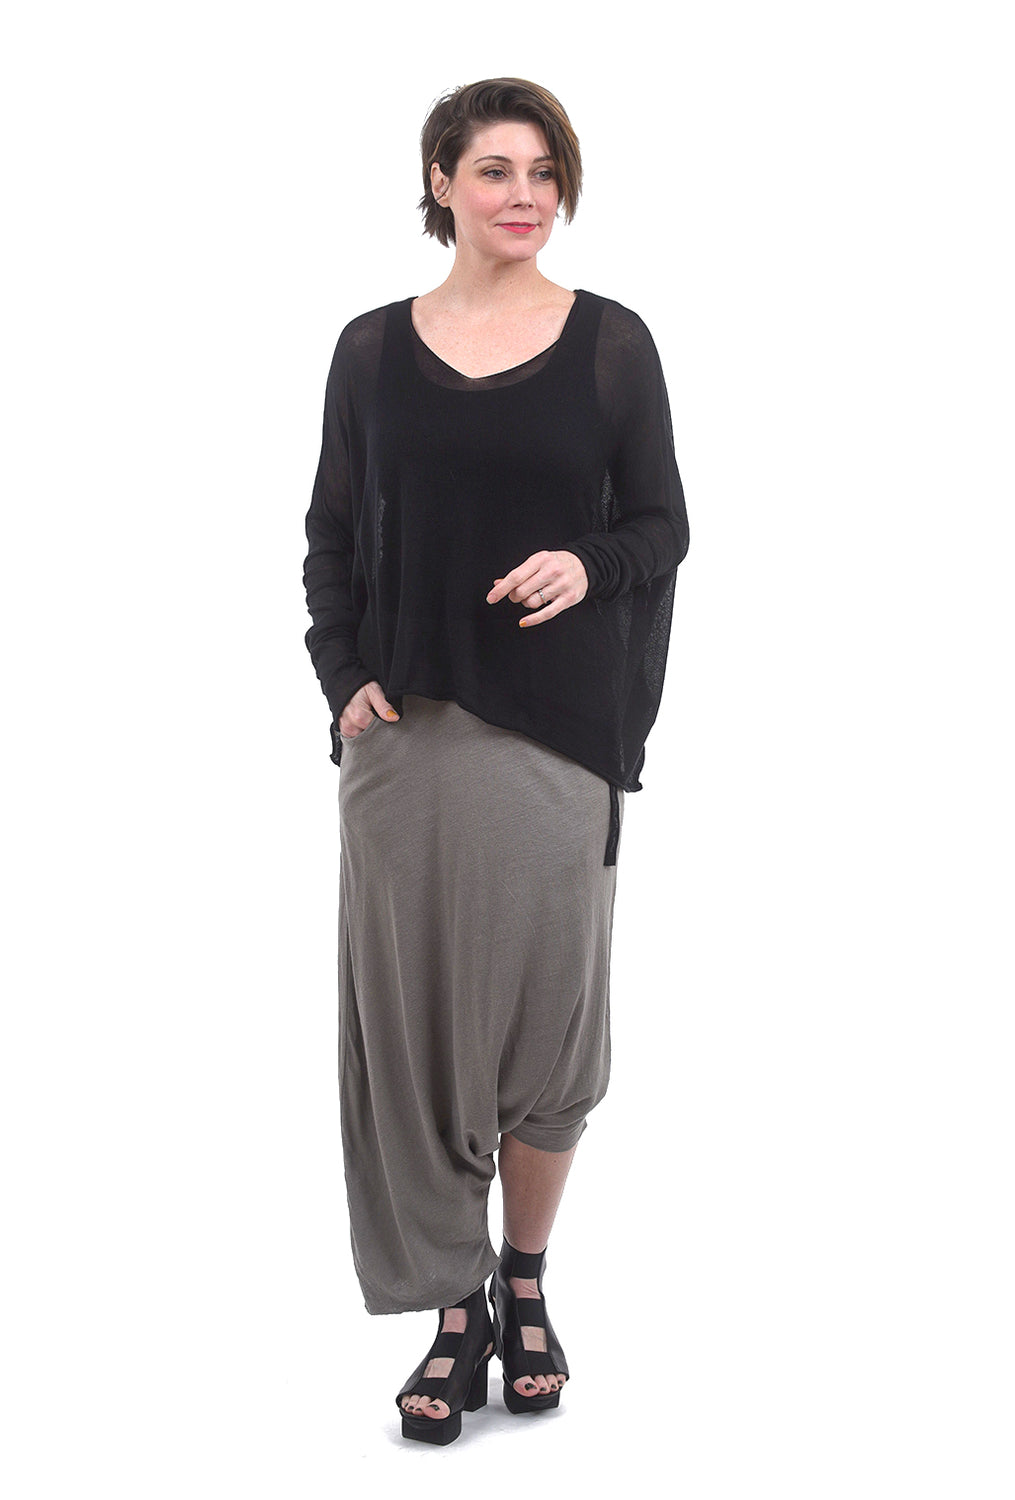 Studio B3 Saraya Oversize Sweater, Black One Size Black